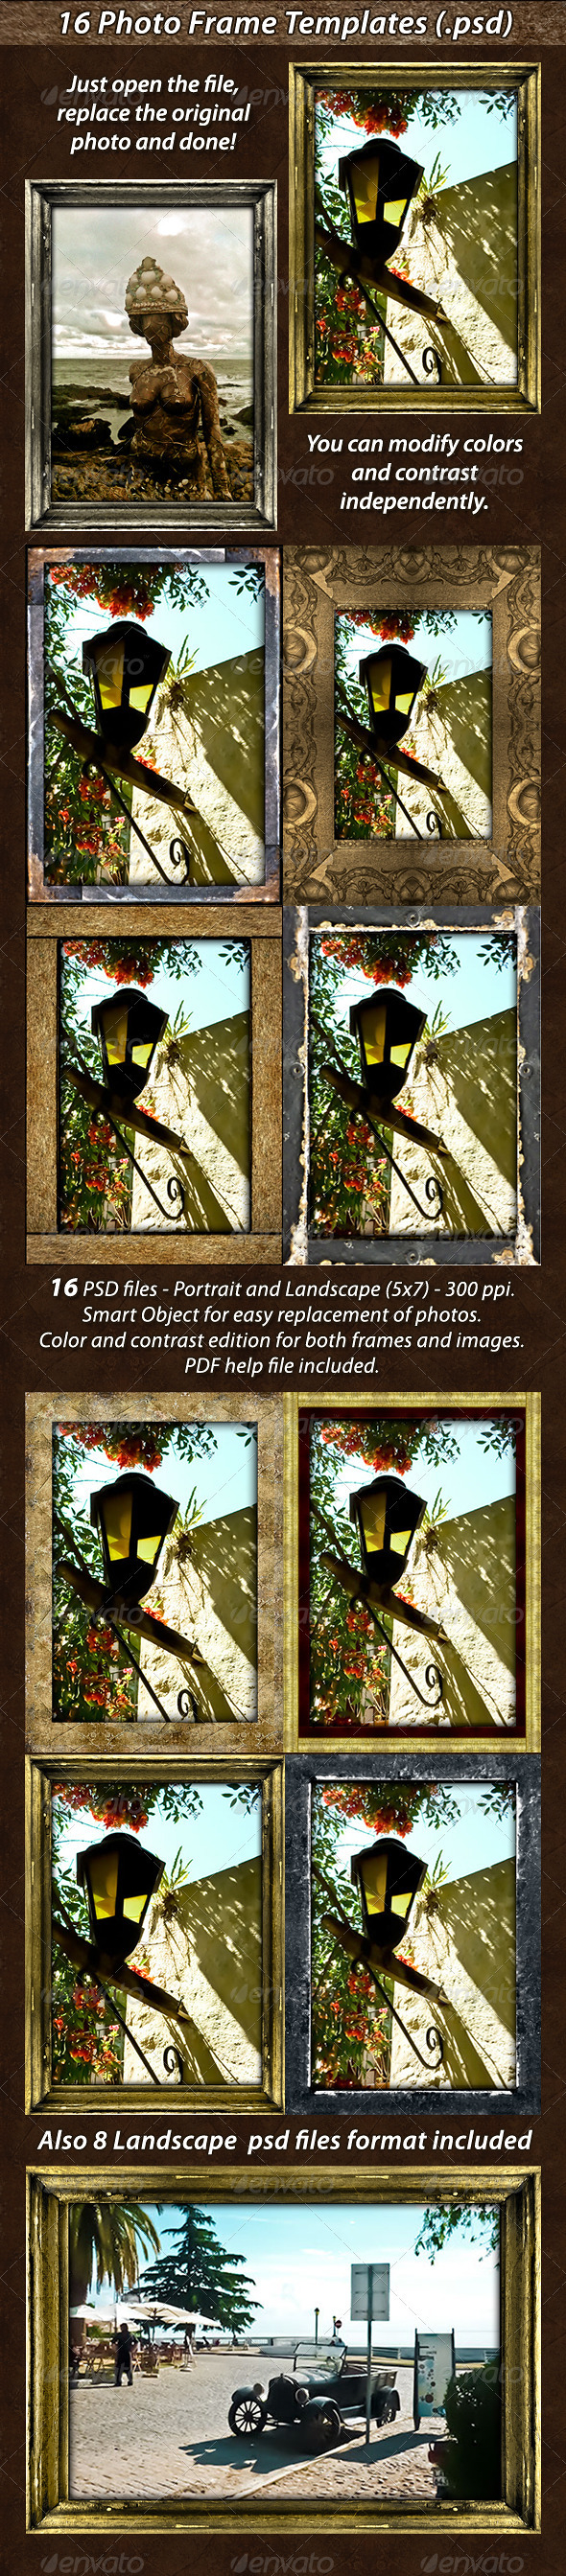 16 Photo Frame Templates Pack - Artistic Photo Templates